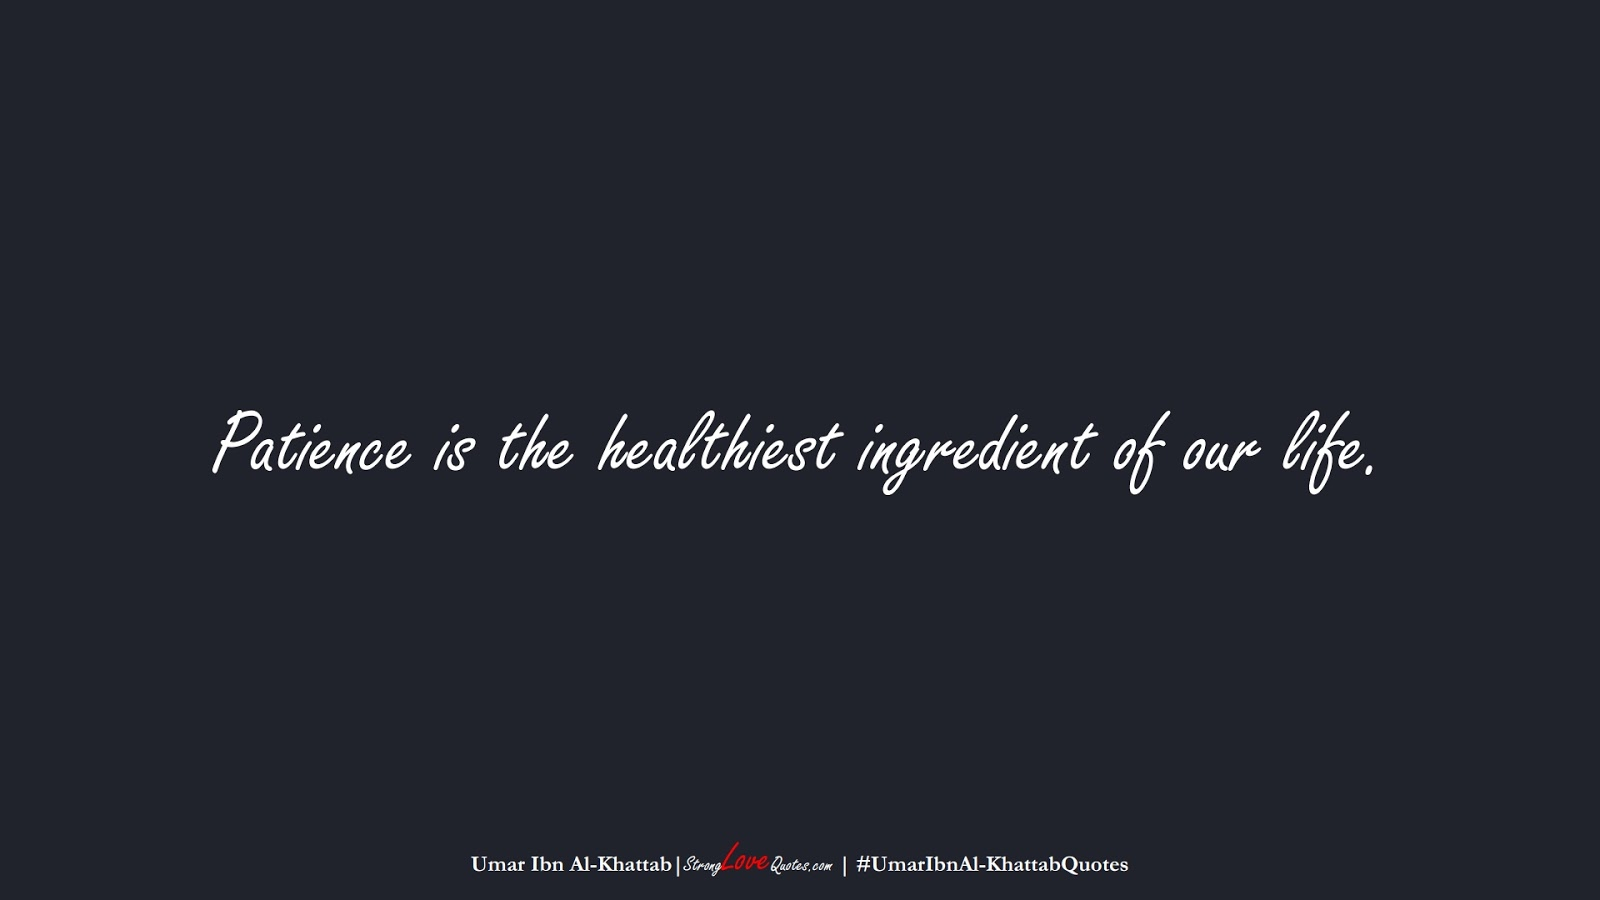 Patience is the healthiest ingredient of our life. (Umar Ibn Al-Khattab);  #UmarIbnAl-KhattabQuotes